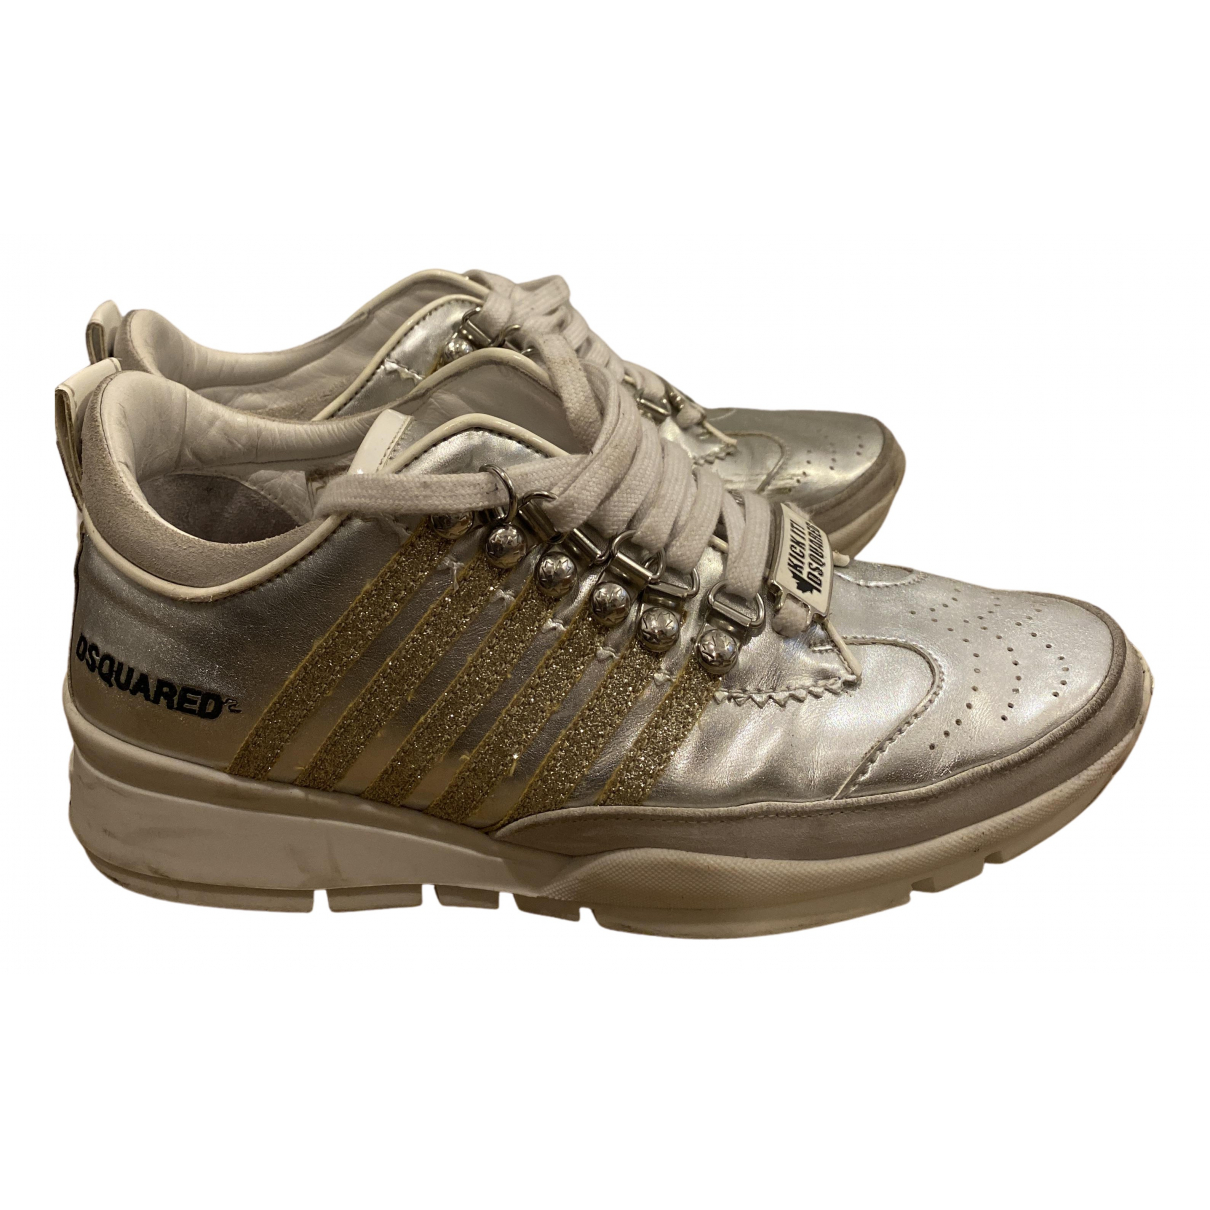 Dsquared2 N Silver Leather Trainers for Women 38 EU